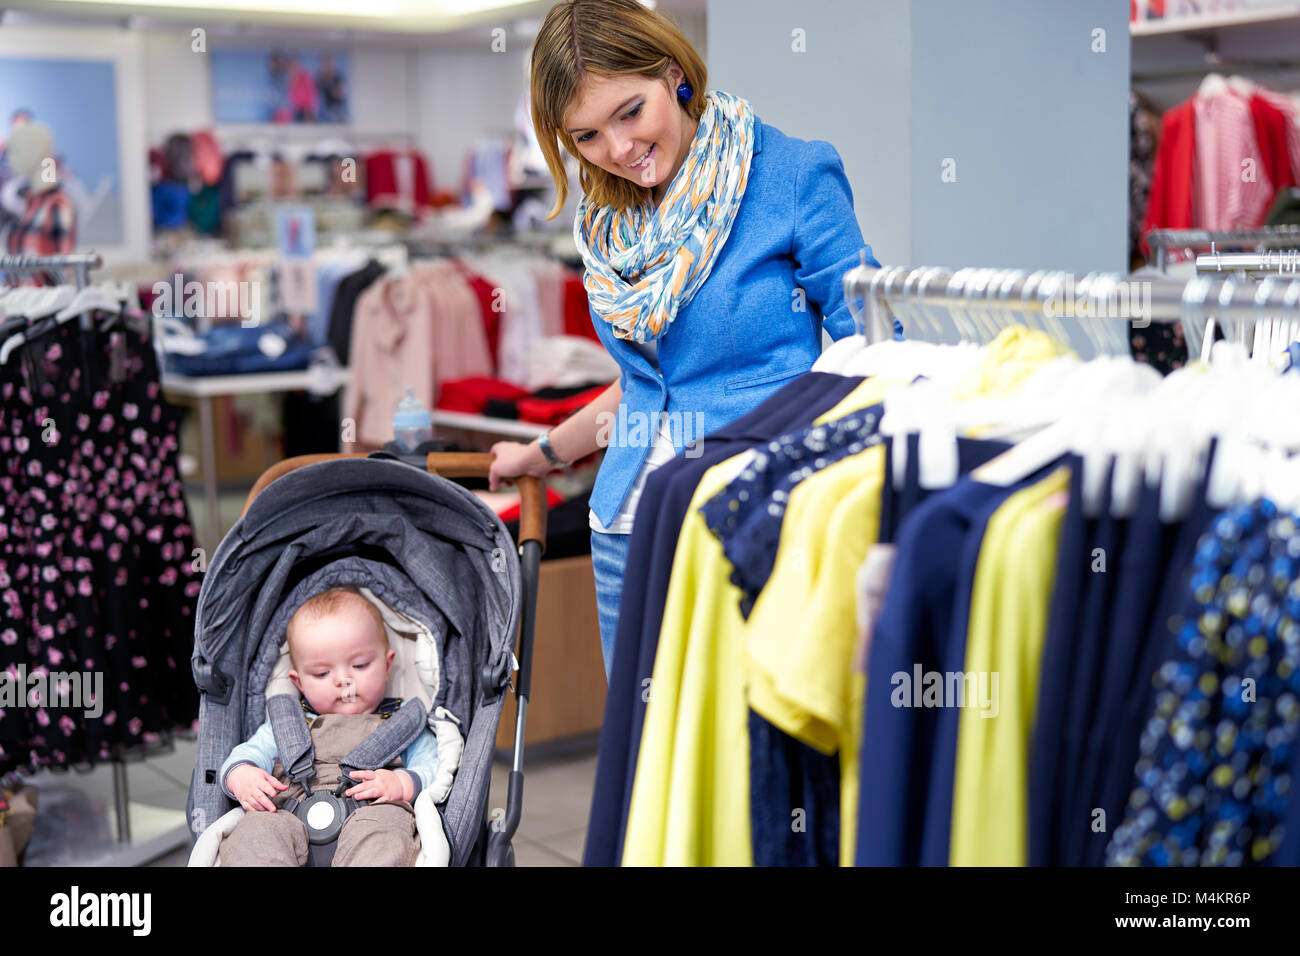 Young woman chooses clothes in a store - Stock Image